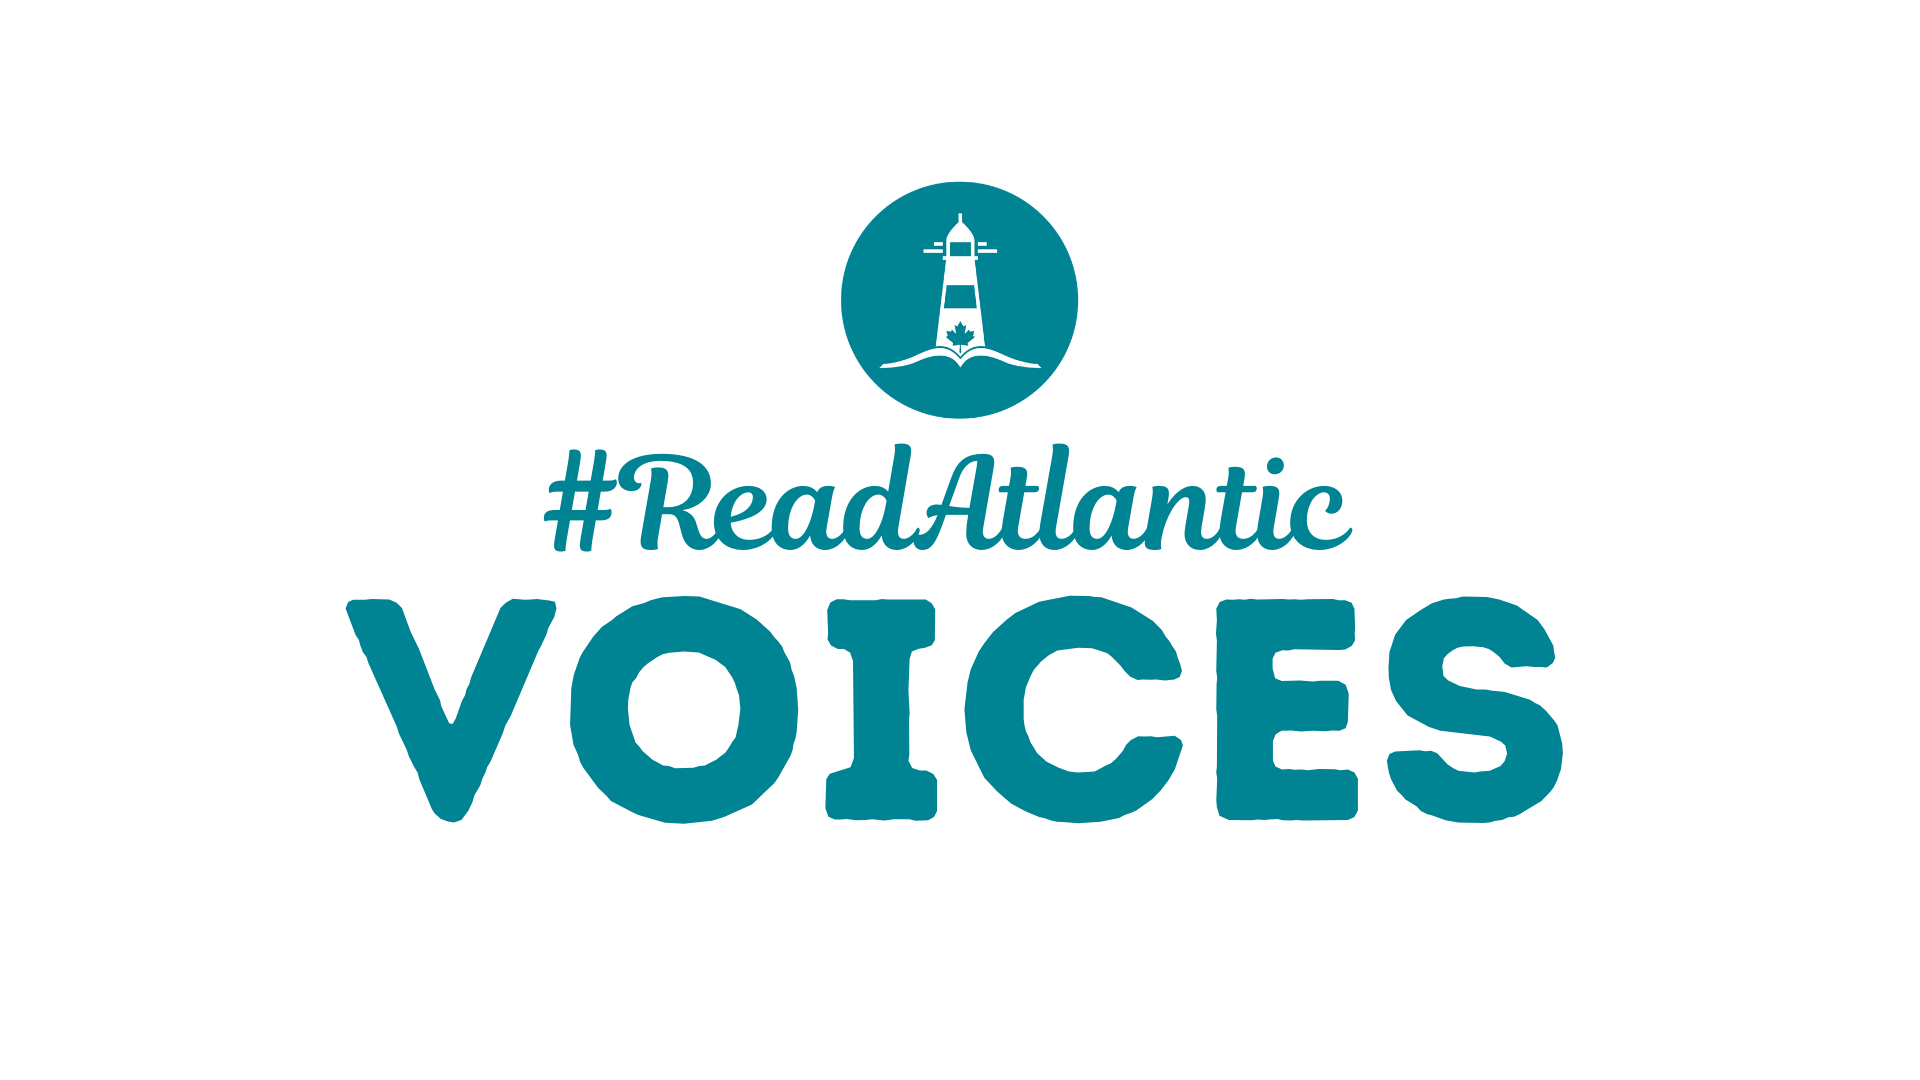 #ReadAtlantic Voices